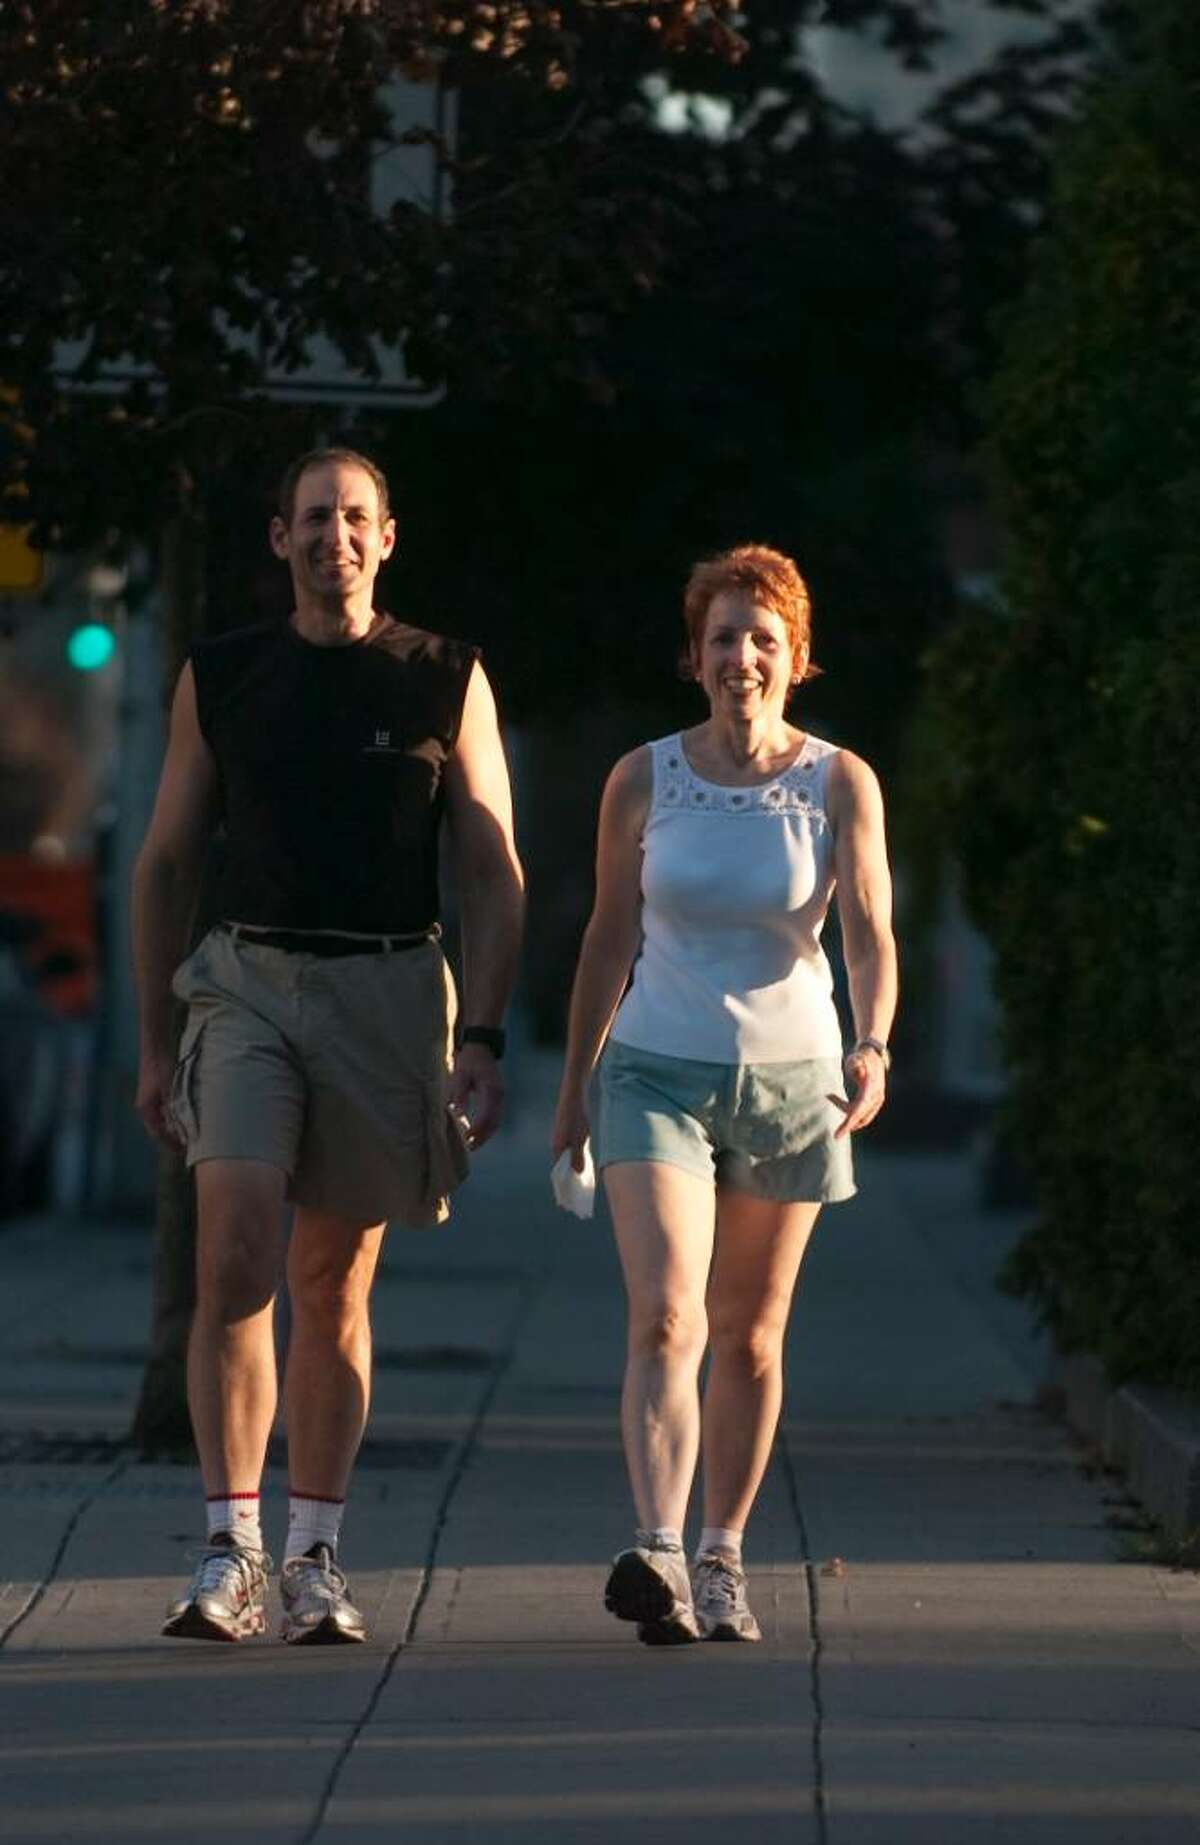 Myles Cohen, 58, and his wife Mary, 55, walk their usual route in downtown Stamford on Tuesday, September 1, 2009.